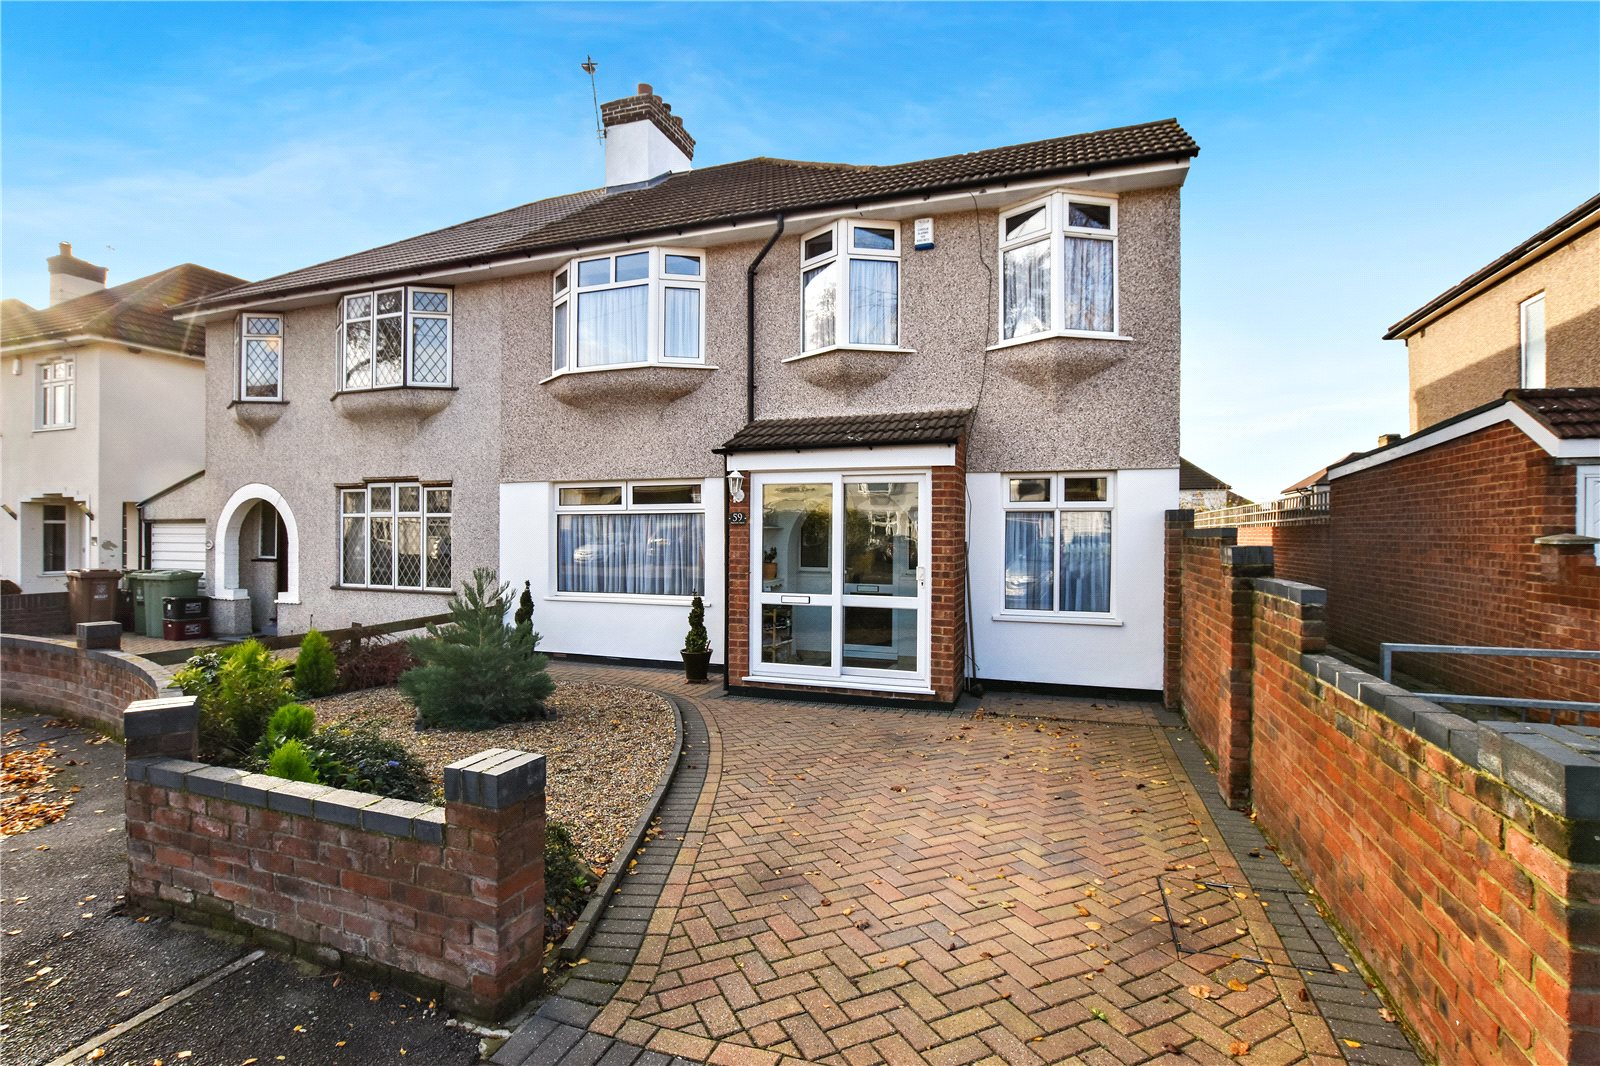 Preston Drive, Bexleyheath, Kent, DA7